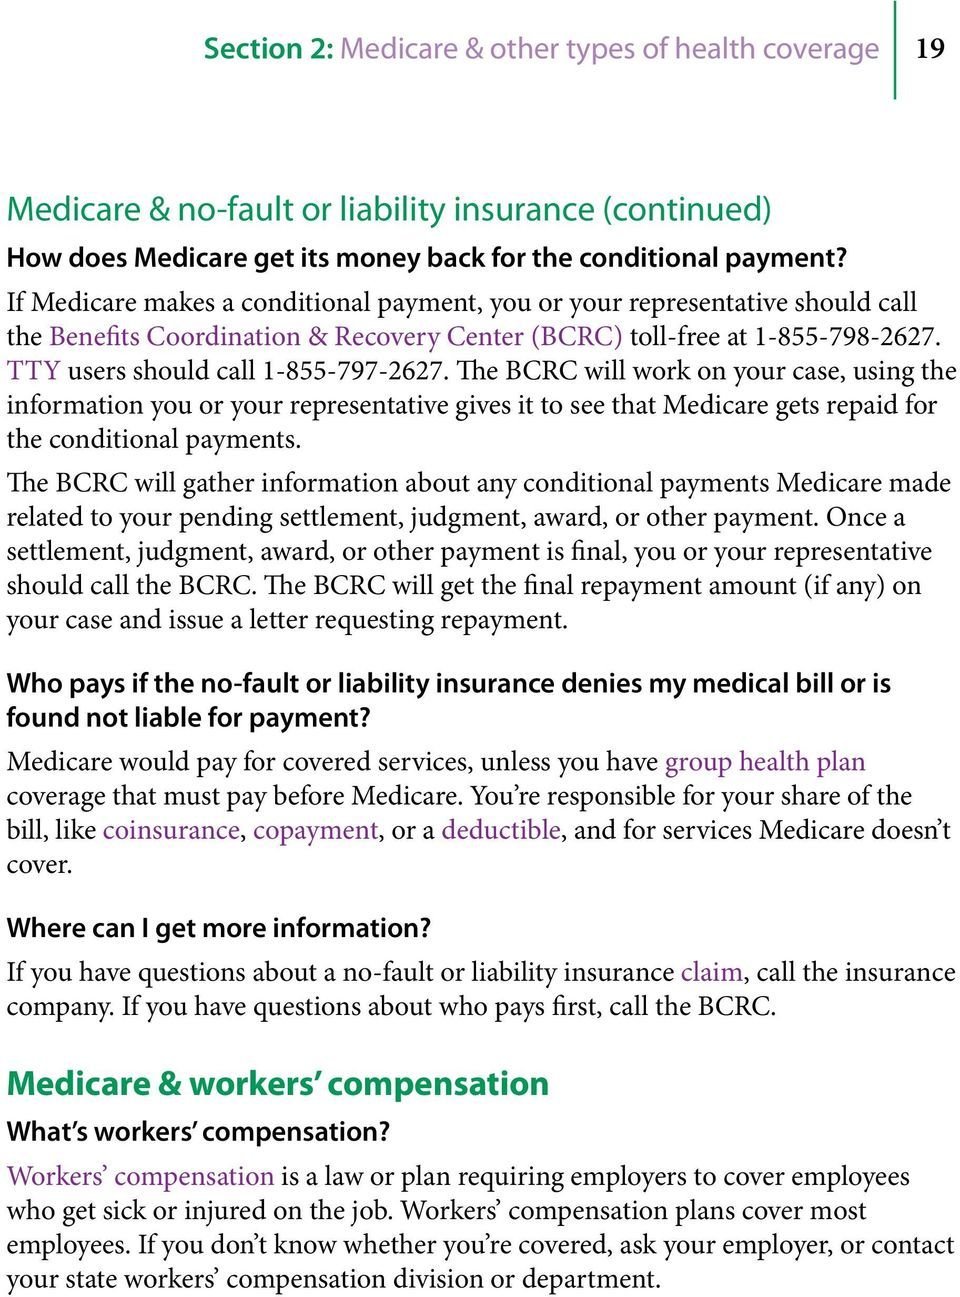 The BCRC will work on your case, using the information you or your representative gives it to see that Medicare gets repaid for the conditional payments.